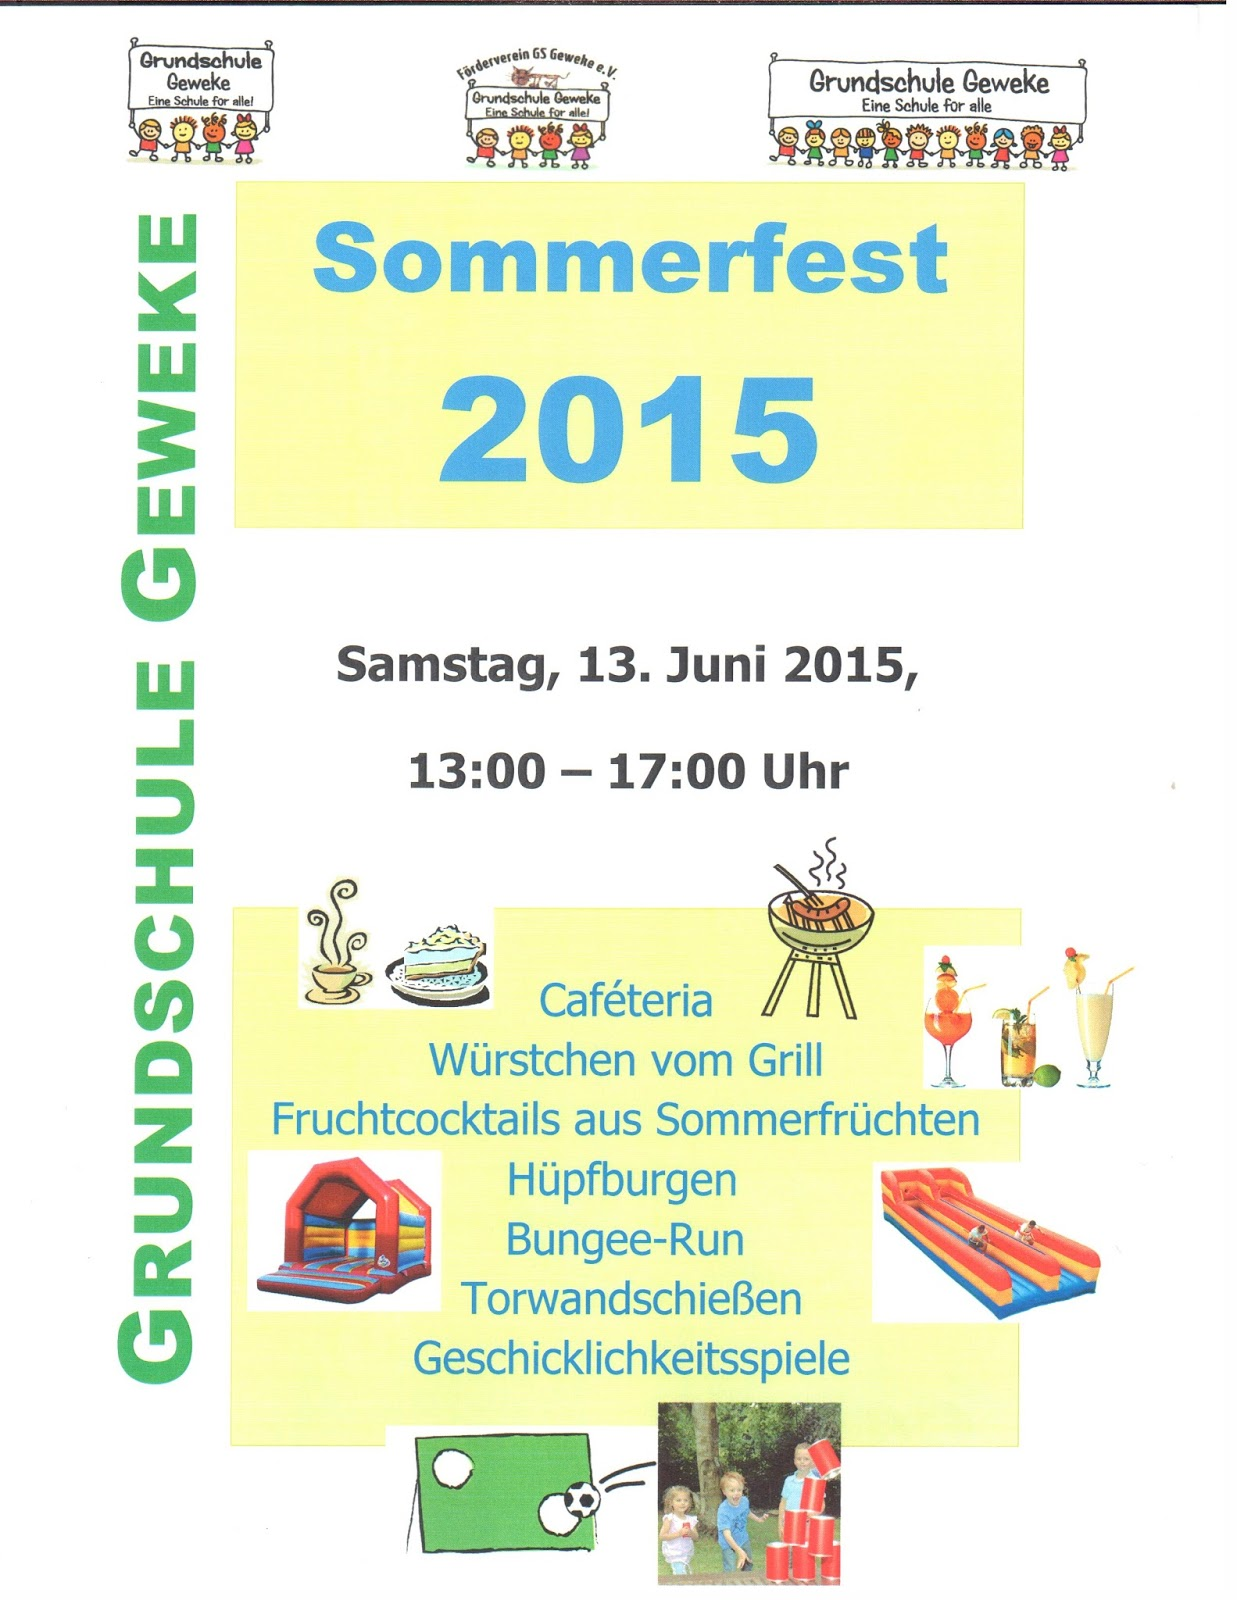 grundschule geweke vorfreude auf das sommerfest 2015. Black Bedroom Furniture Sets. Home Design Ideas